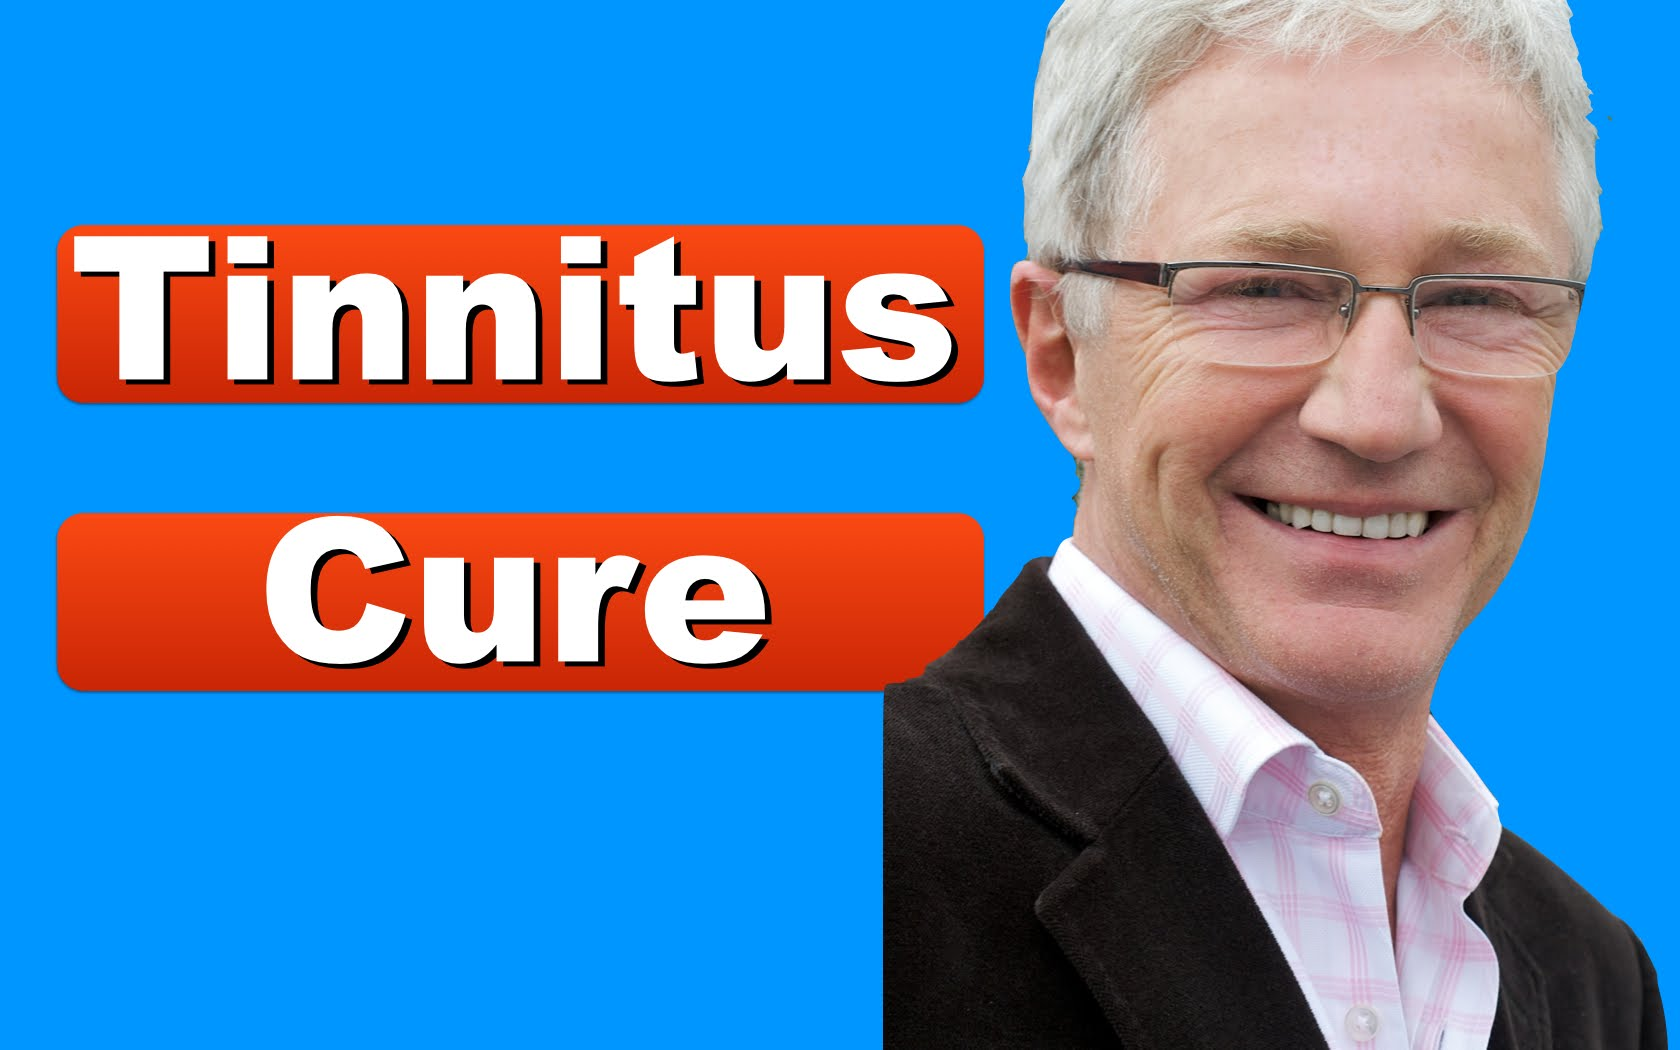 The fastest way to cure tinnitus